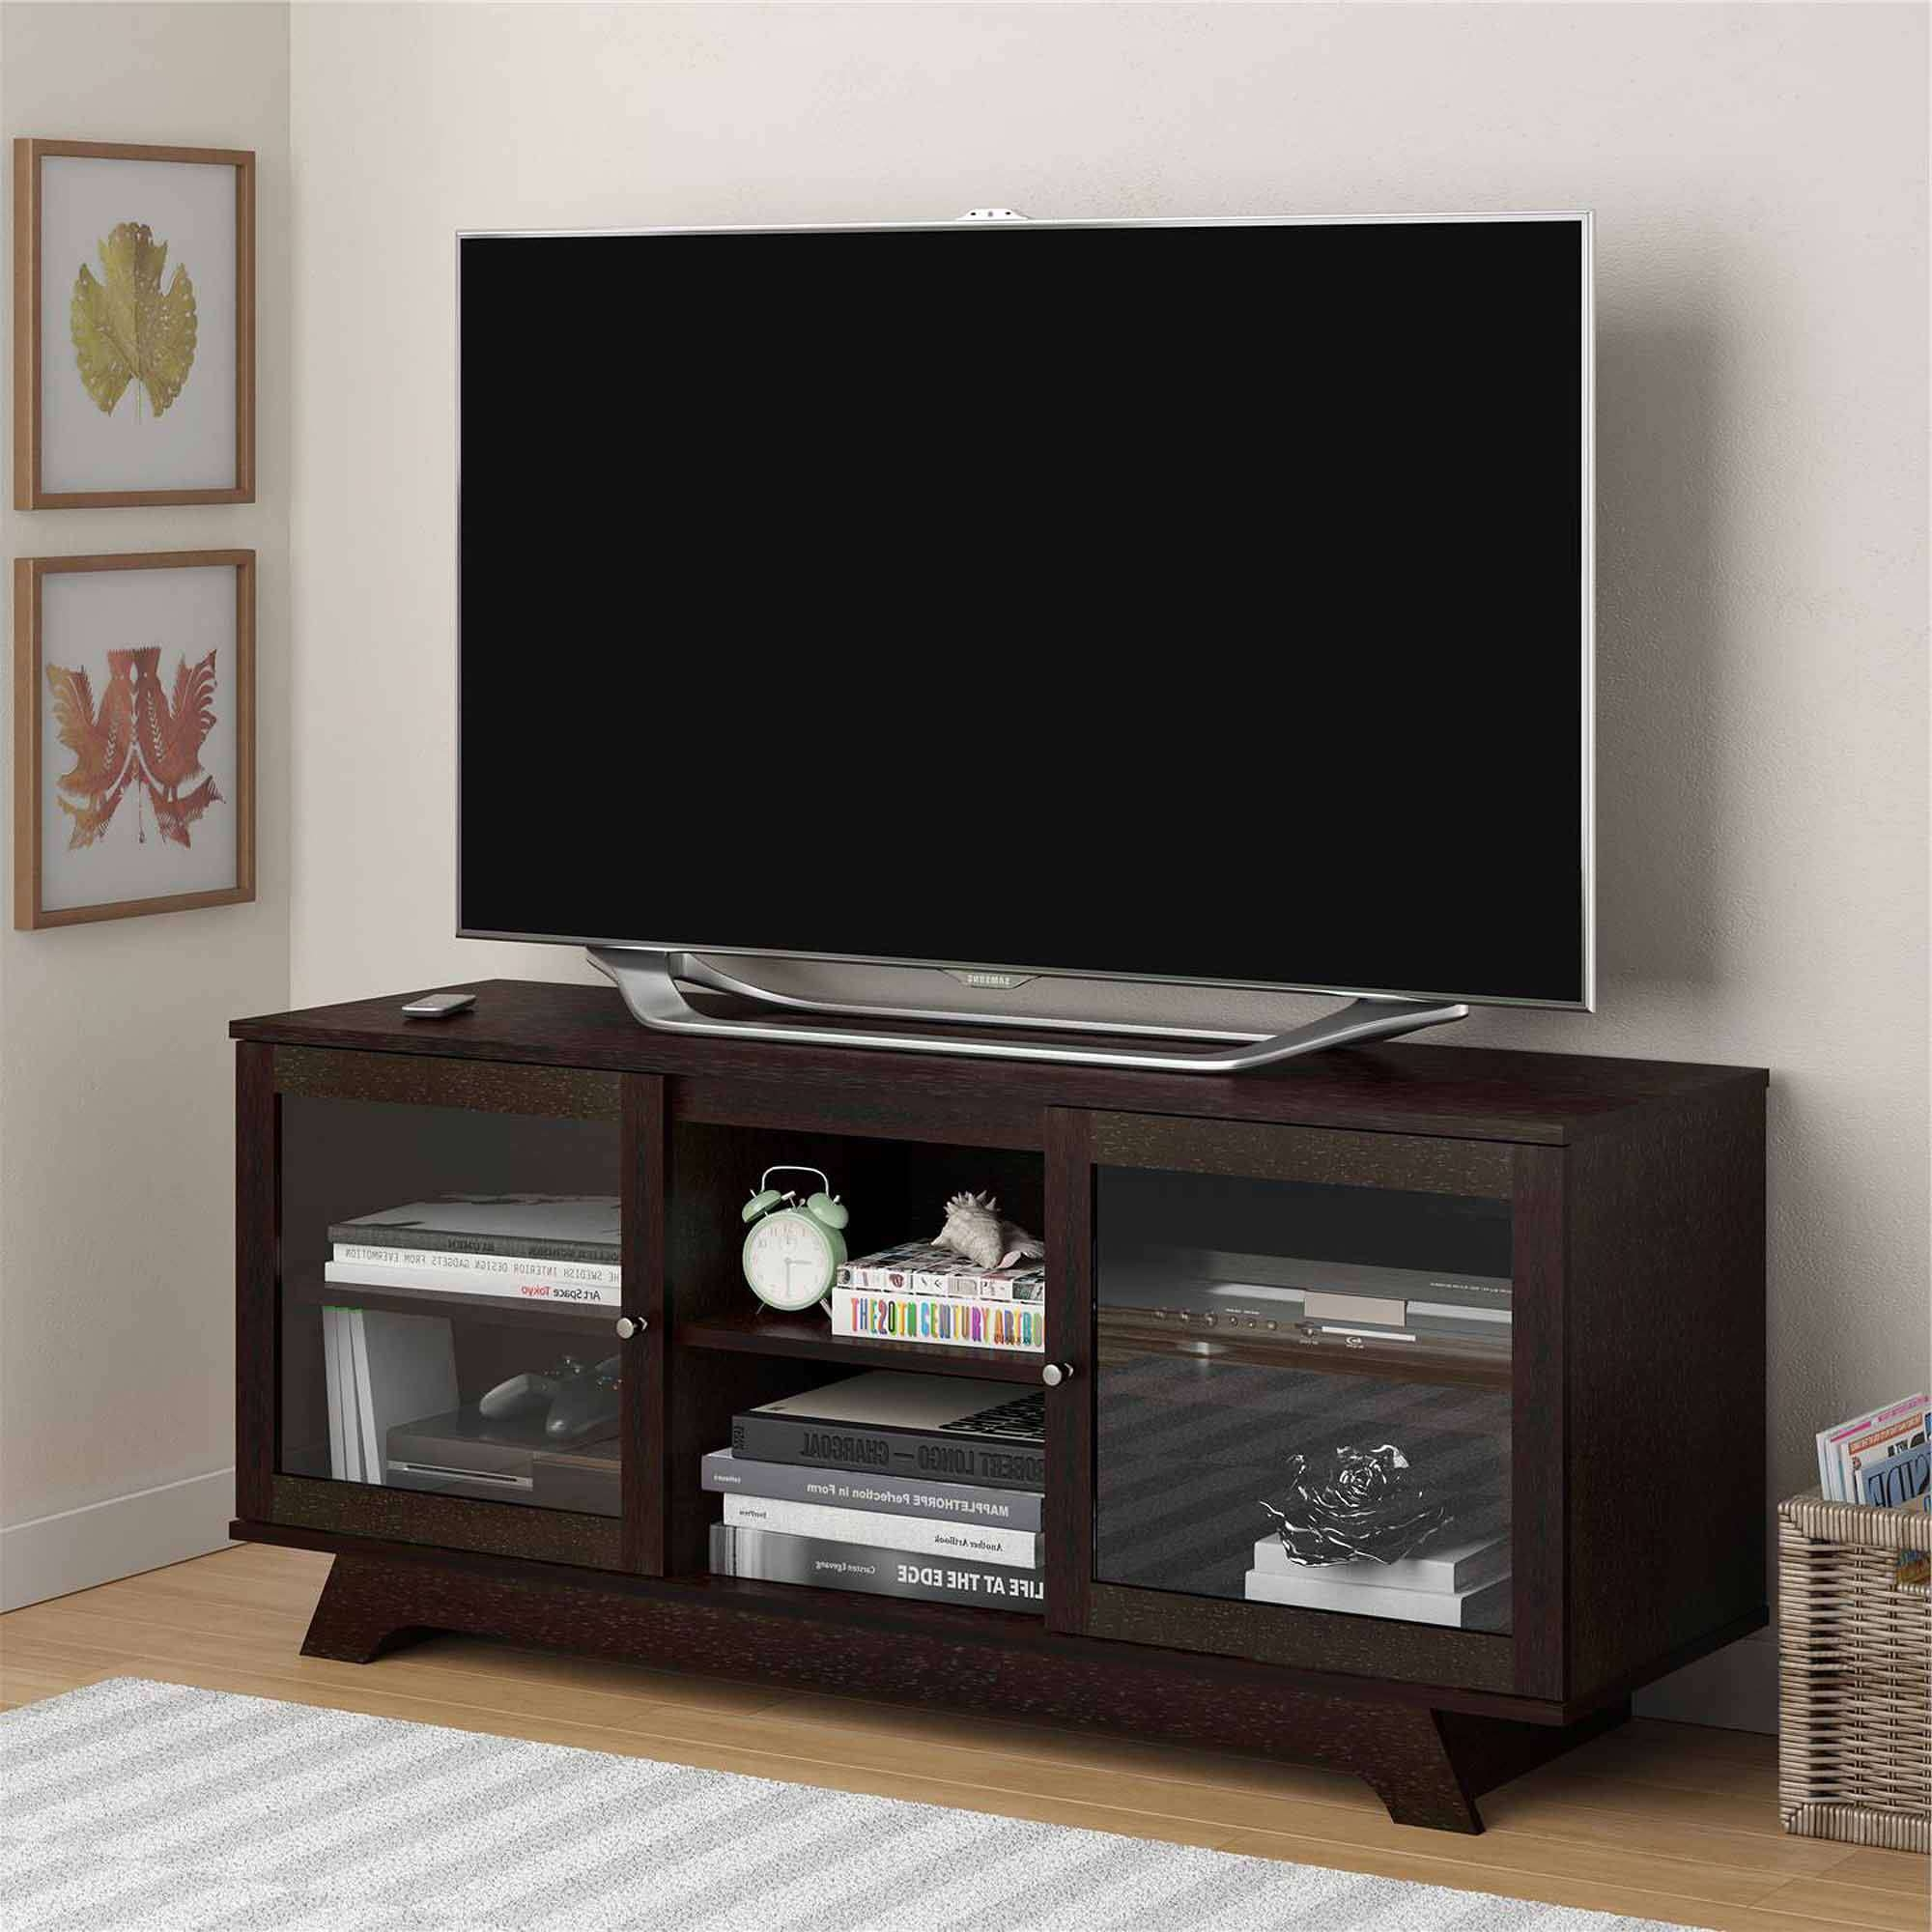 Tv Stands & Entertainment Centers – Walmart Intended For Tv Cabinets (View 15 of 20)